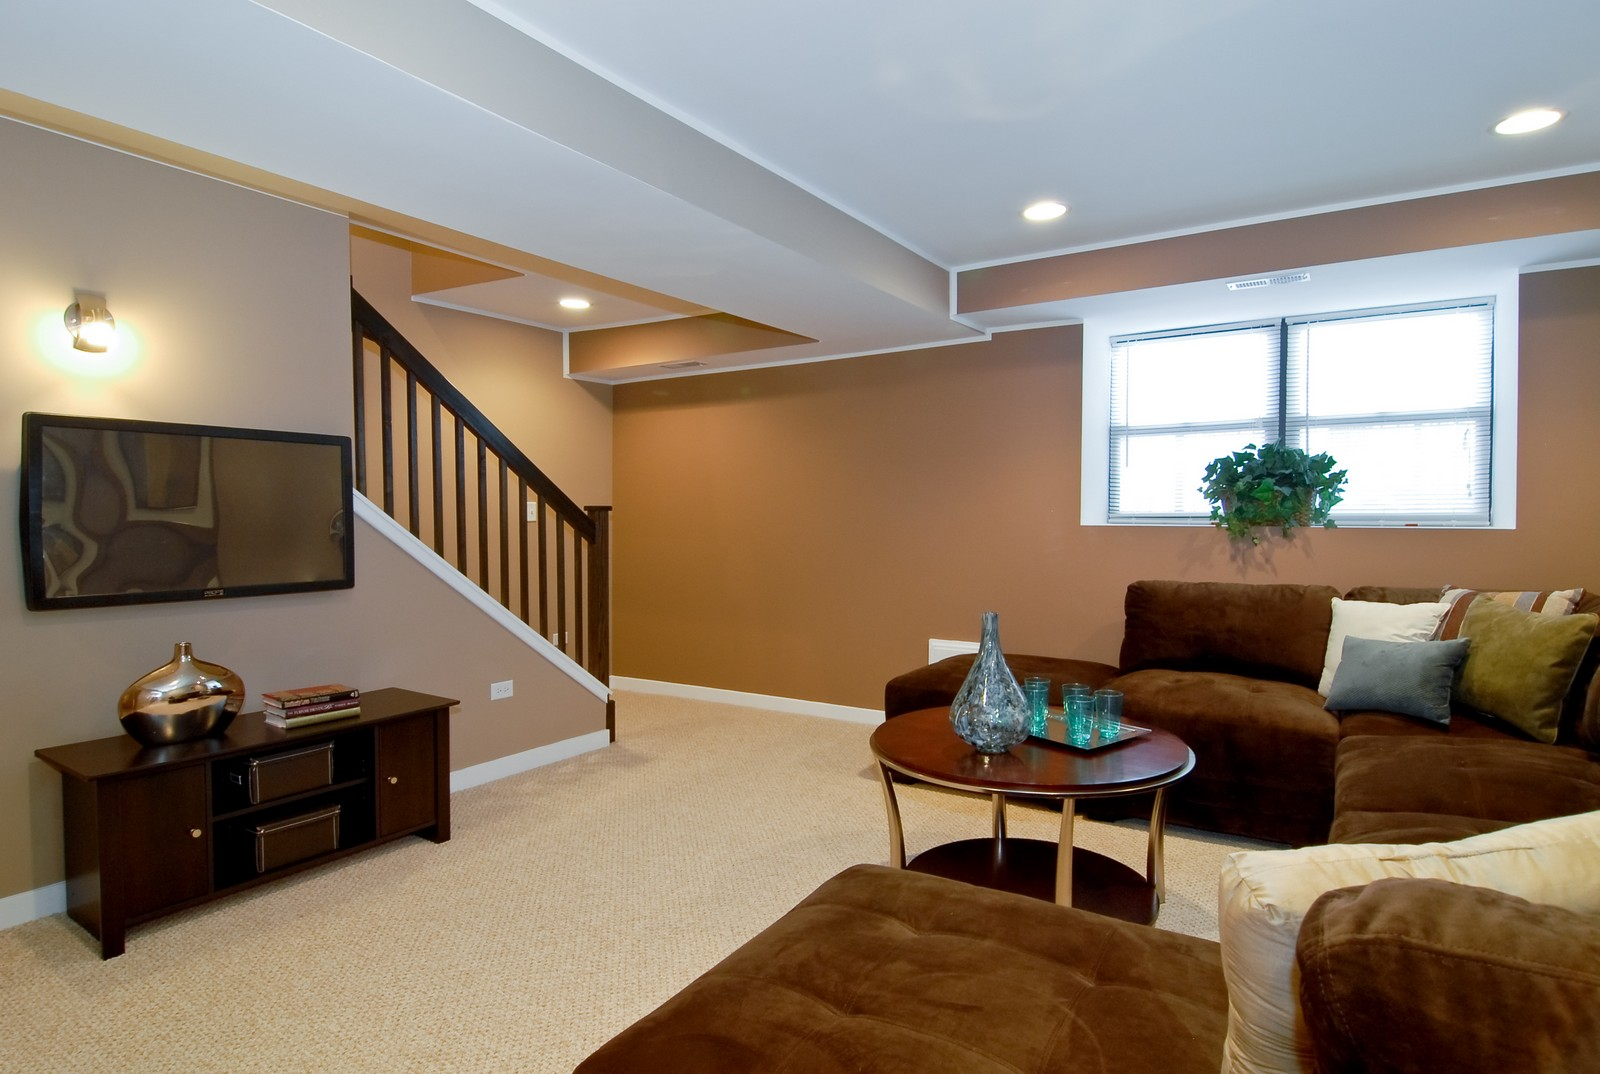 Real Estate Photography - 1738 N. Troy, Chicago, IL, 60647 - Location 2